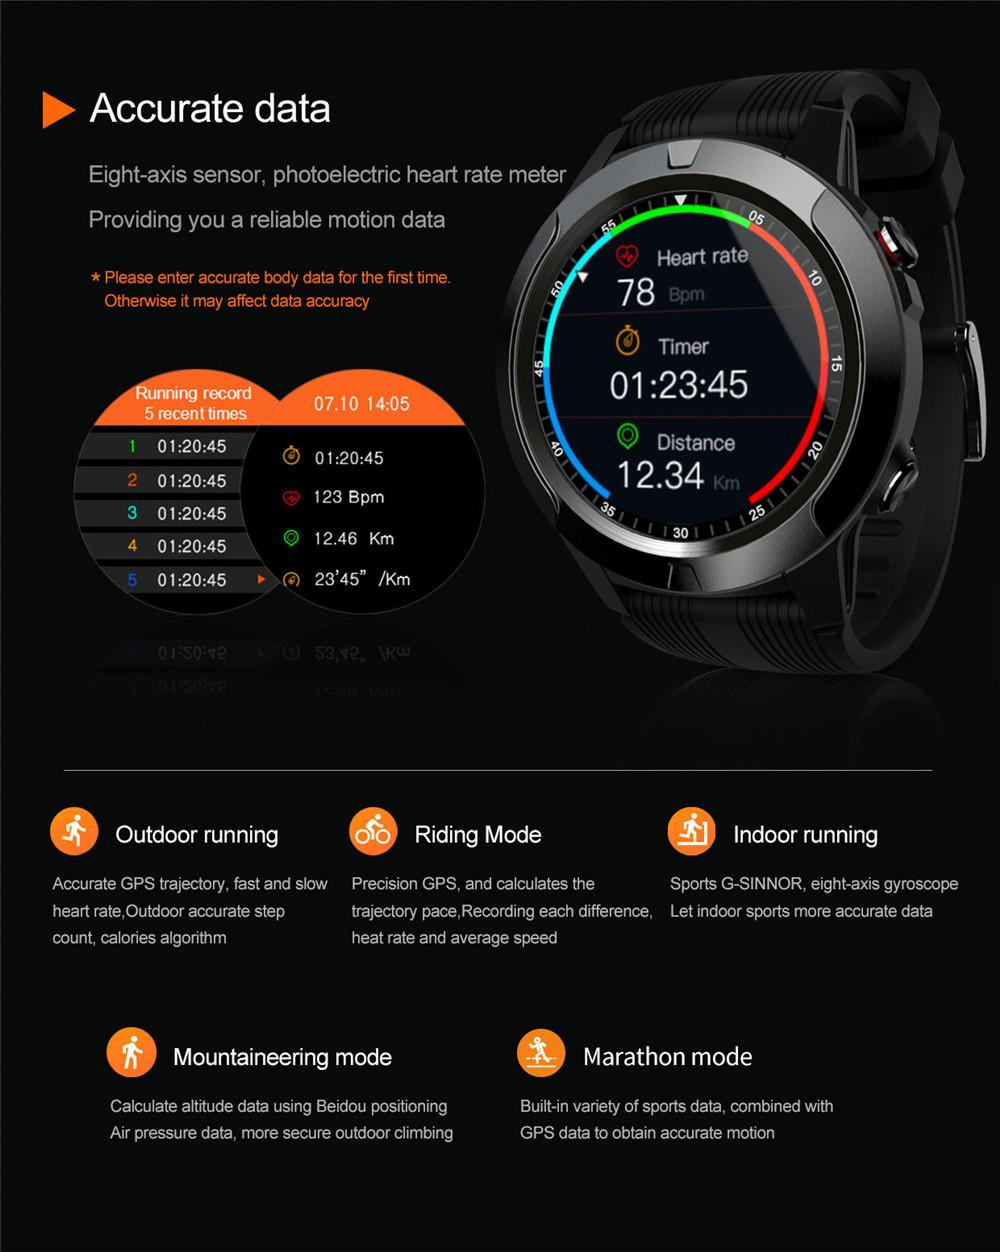 H9307ceb612c149e29ec2b9814769d3c36 2020 Built-in GPS Smart Watch GSM bluetooth Call Phone Air Pressure Heart Rate Blood Pressure Weather Monitor Sport Smartwatch